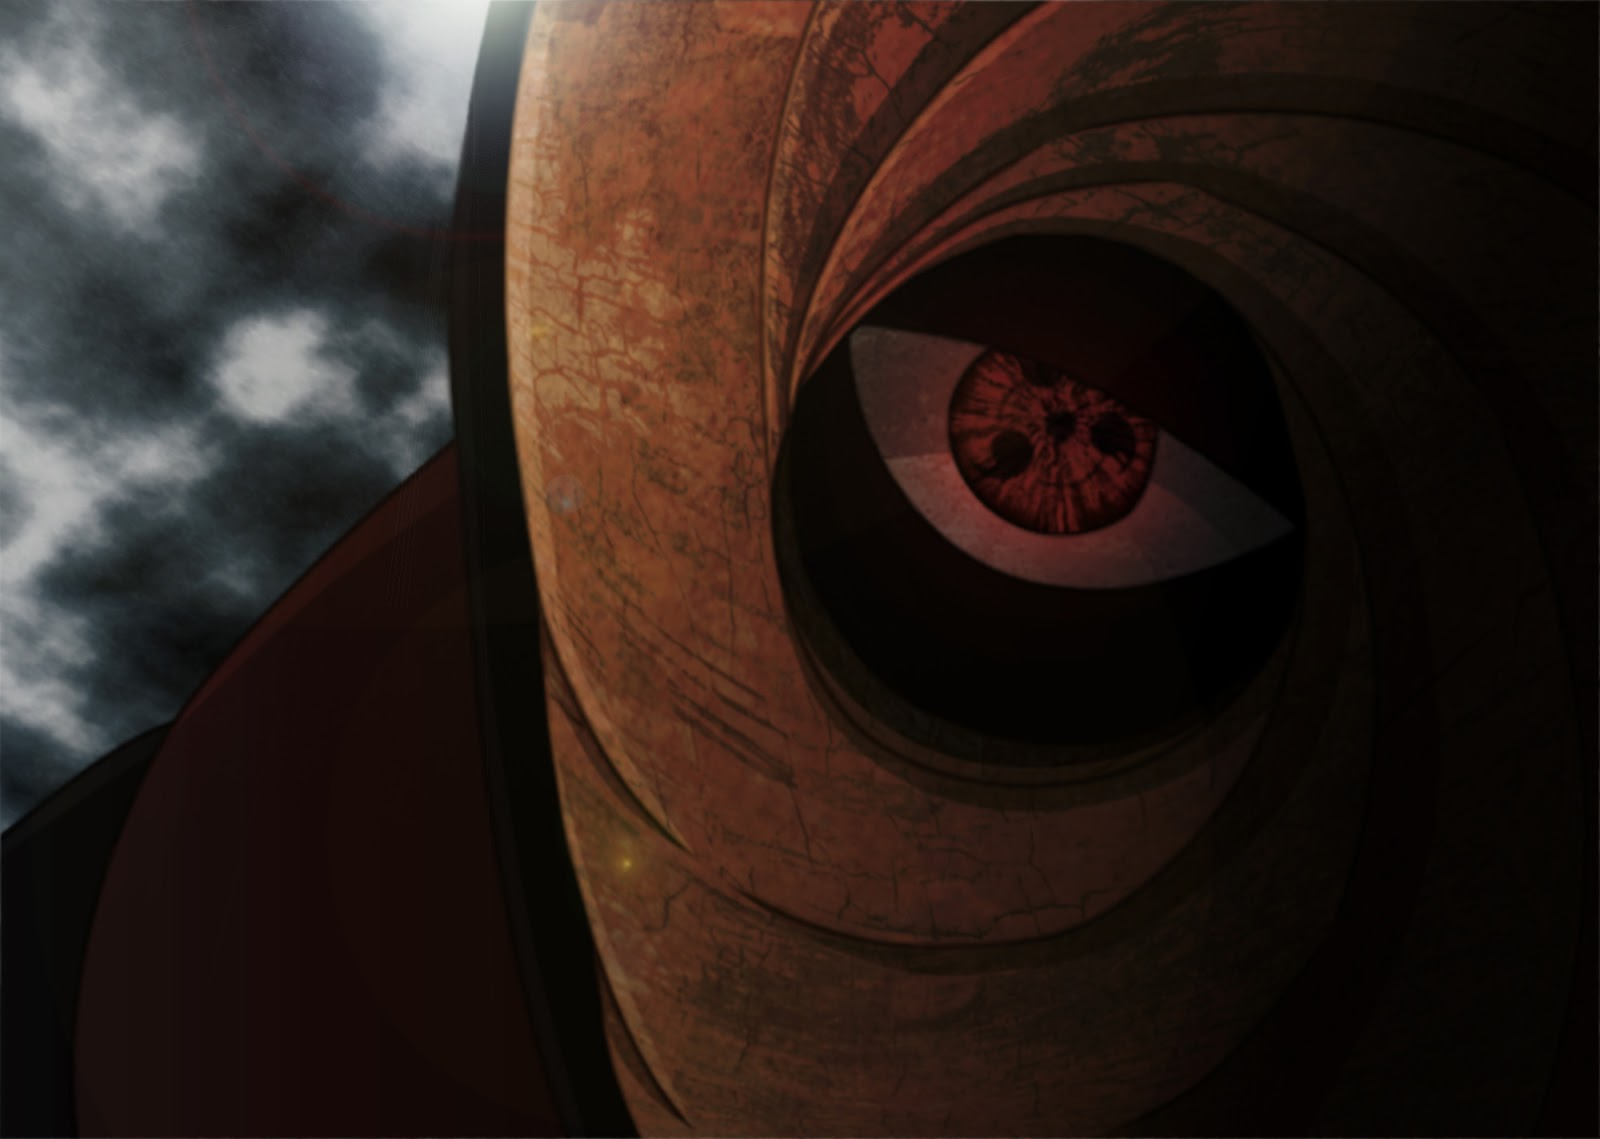 Obito Uchiha 3 Wallpapers Your daily Anime Wallpaper and 1600x1139